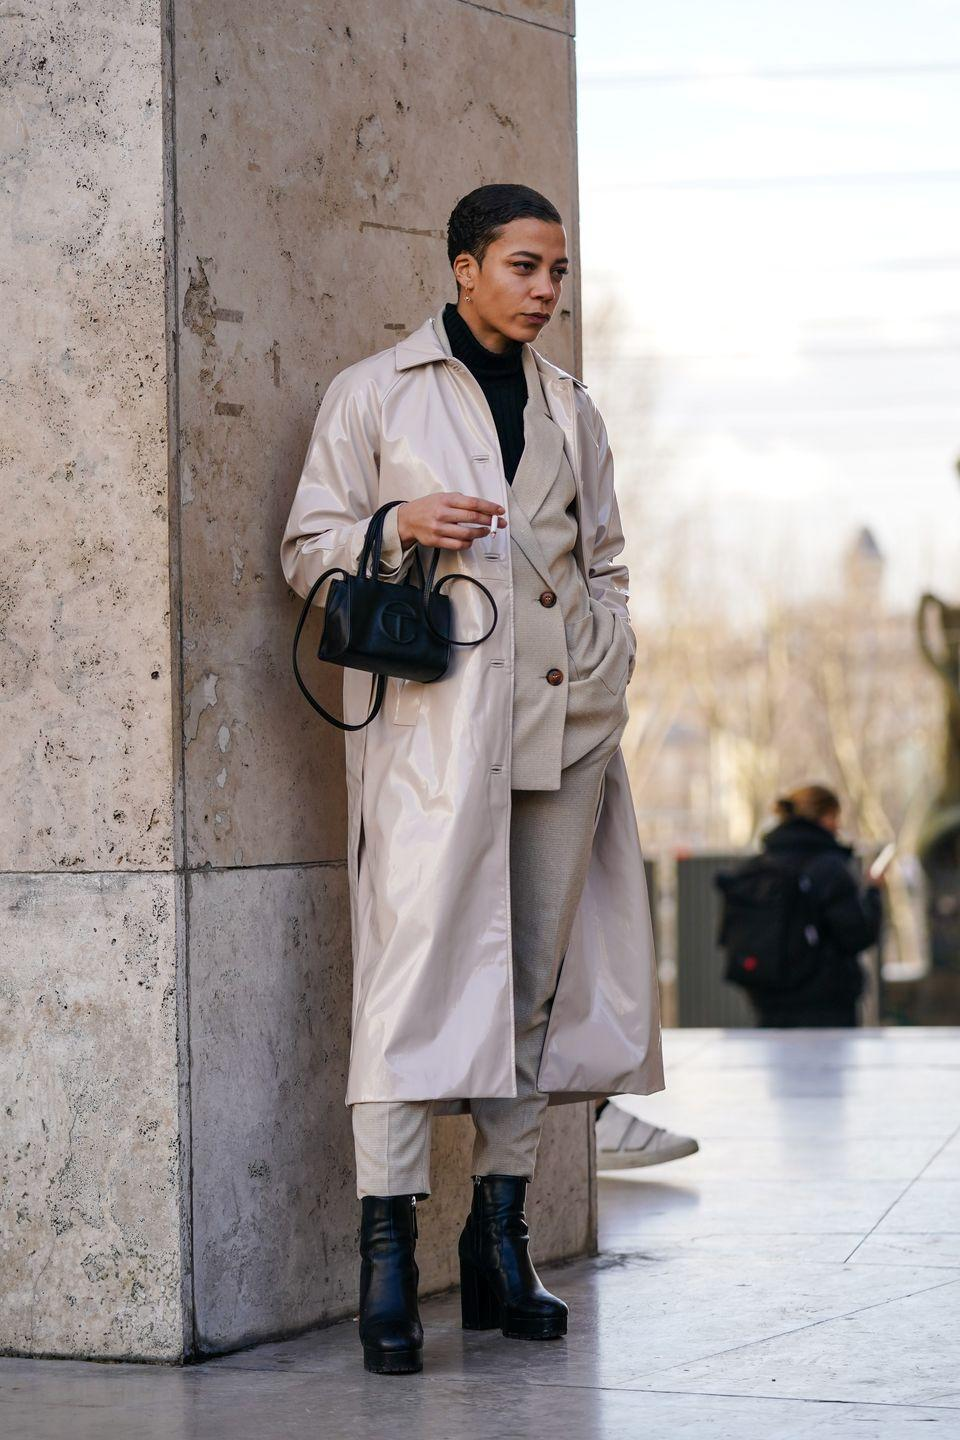 """<p><a href=""""https://www.telfar.net/"""" rel=""""nofollow noopener"""" target=""""_blank"""" data-ylk=""""slk:Telfar"""" class=""""link rapid-noclick-resp"""">Telfar</a>'s shopping bag is the ultimate fashion status symbol now—which of course means it sells out faster than you can get your hands on it. Sleek, simple, and collectible—it's he very definition of It bag. </p>"""